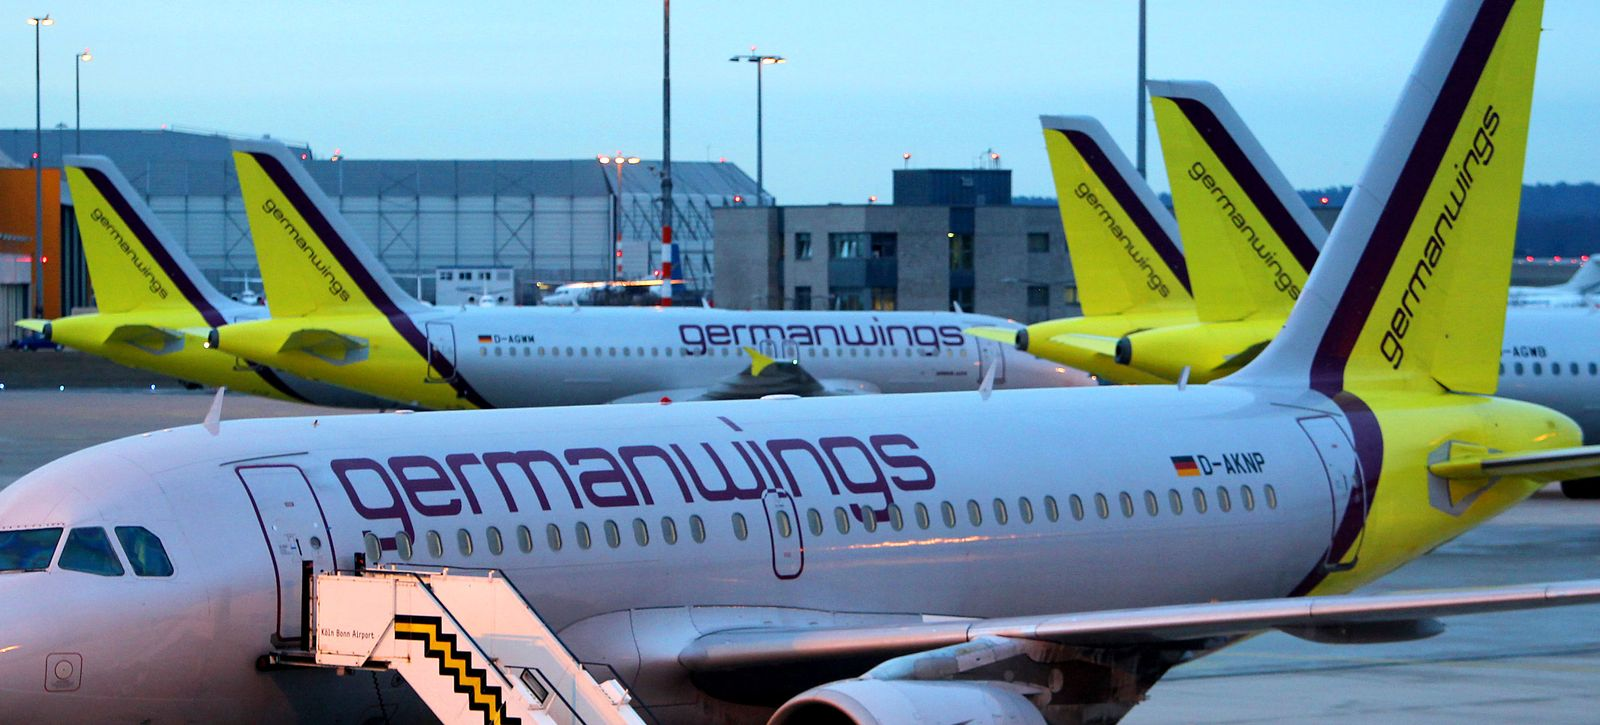 Lufthansa will Marke Germanwings sterben lassen